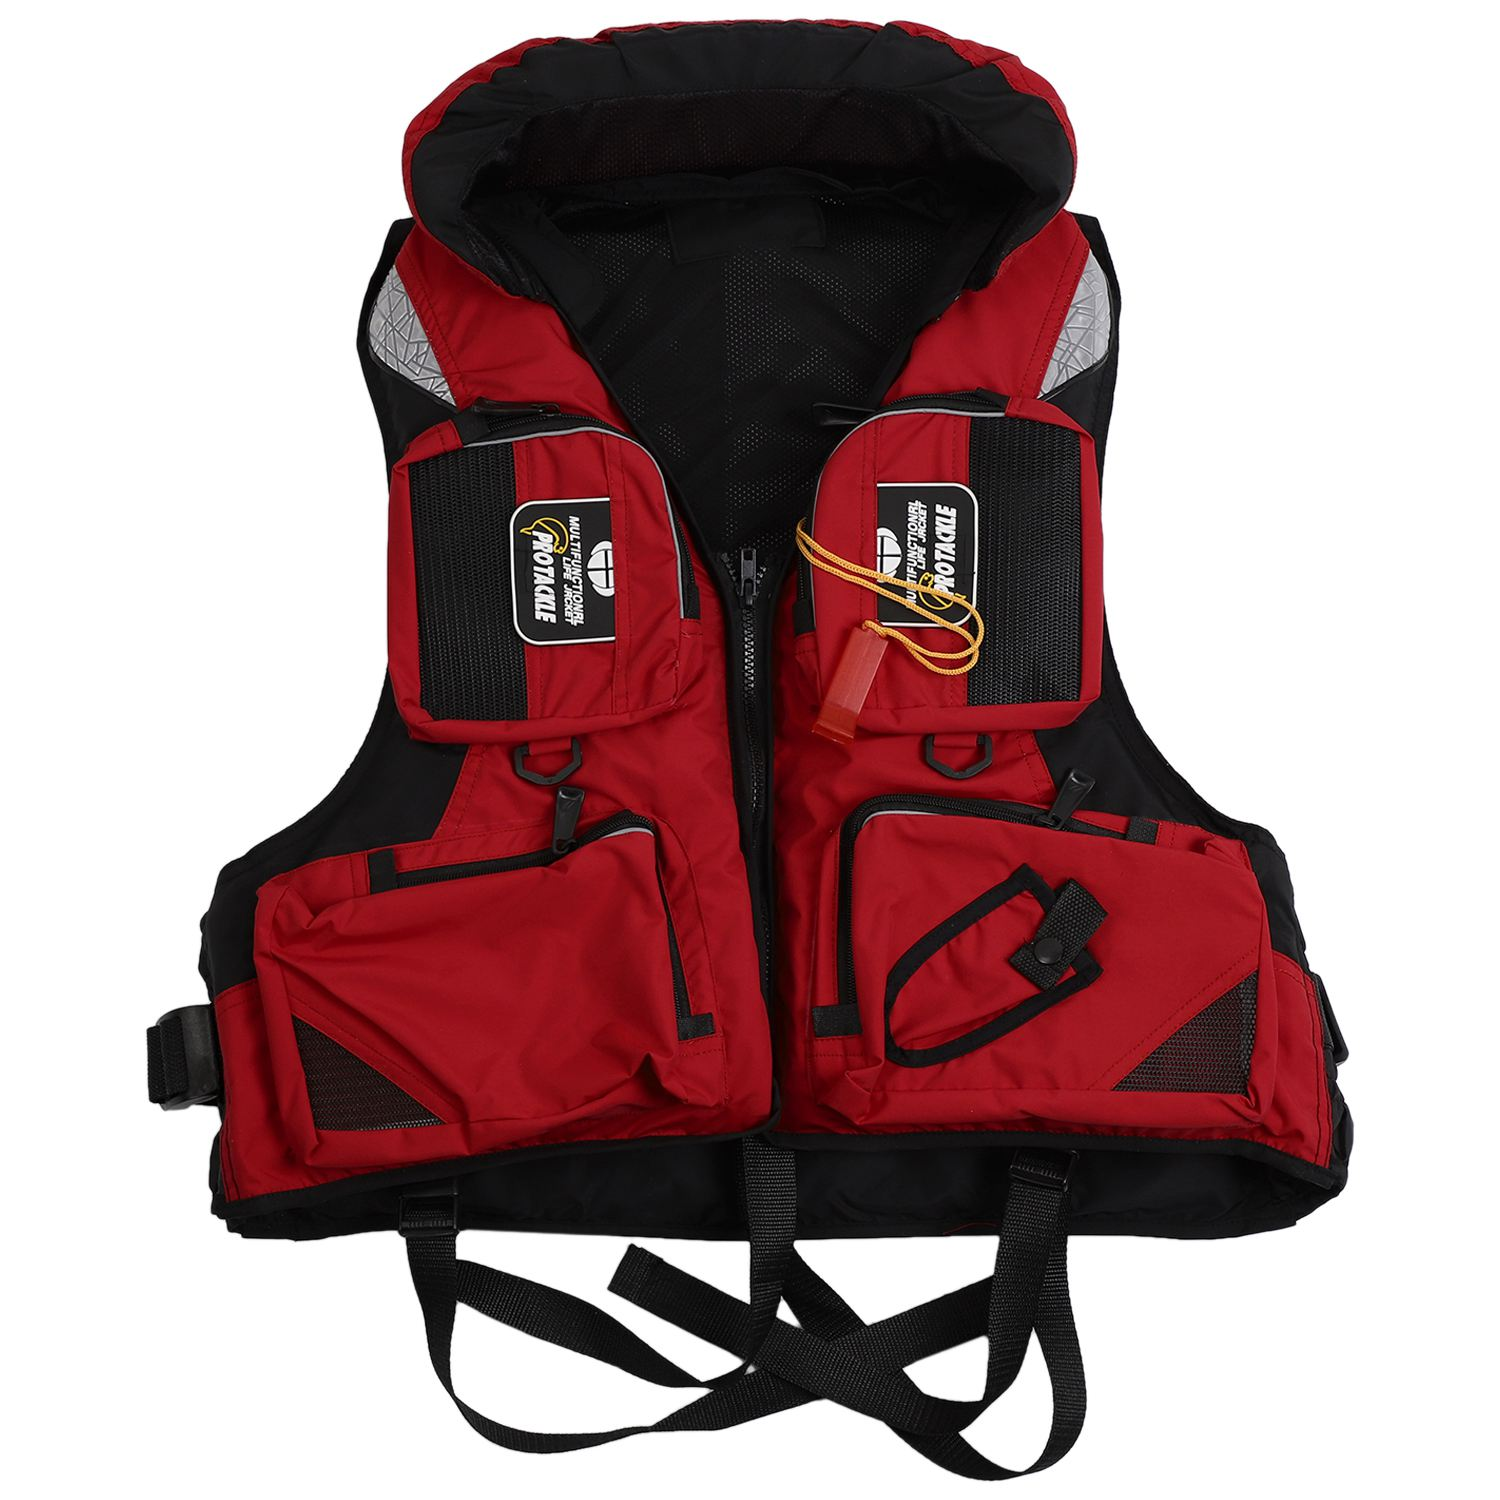 DSGS Adult Adjustable Buoyancy Aid Swimming Boating Sailing Fishing Kayak Life Jacket Vest Preservers